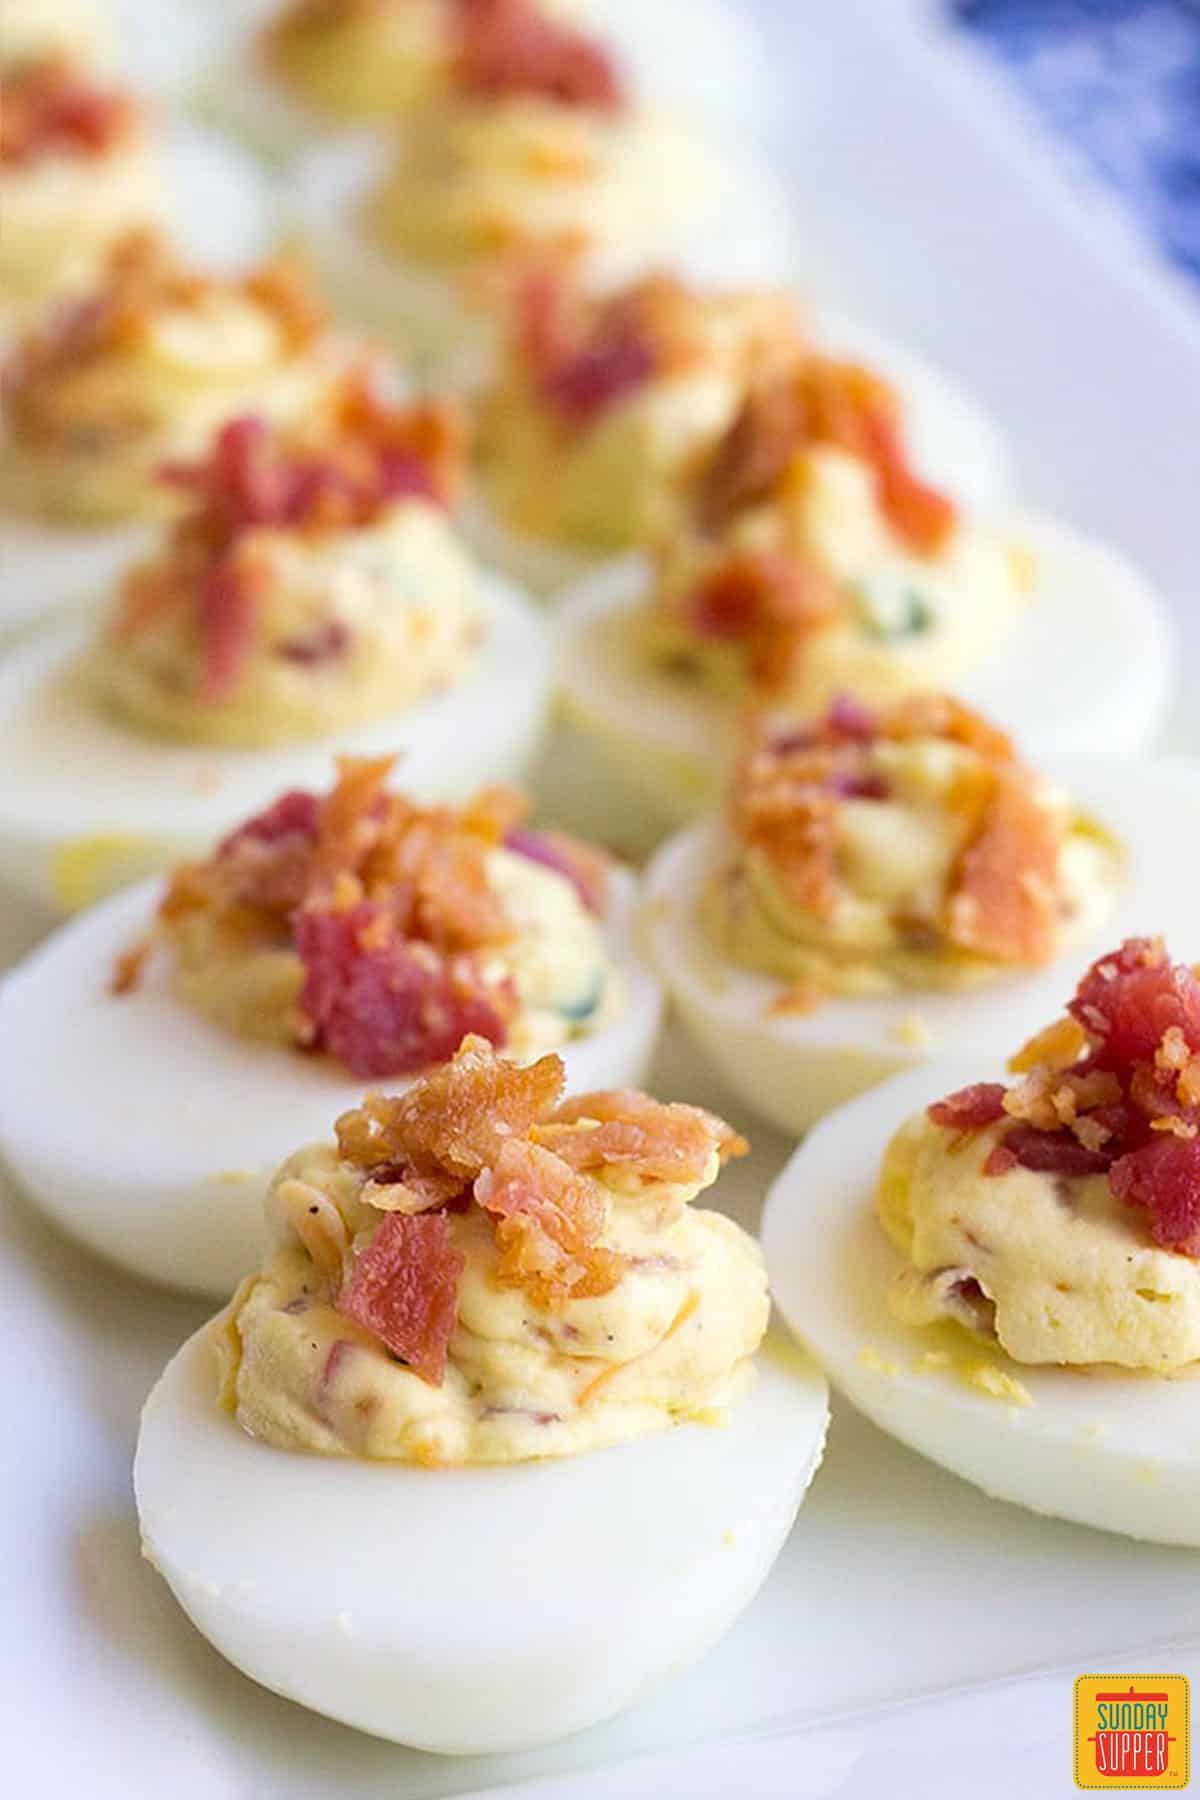 Two rows of bacon jalapeno deviled eggs with cream cheese topped with bacon bits